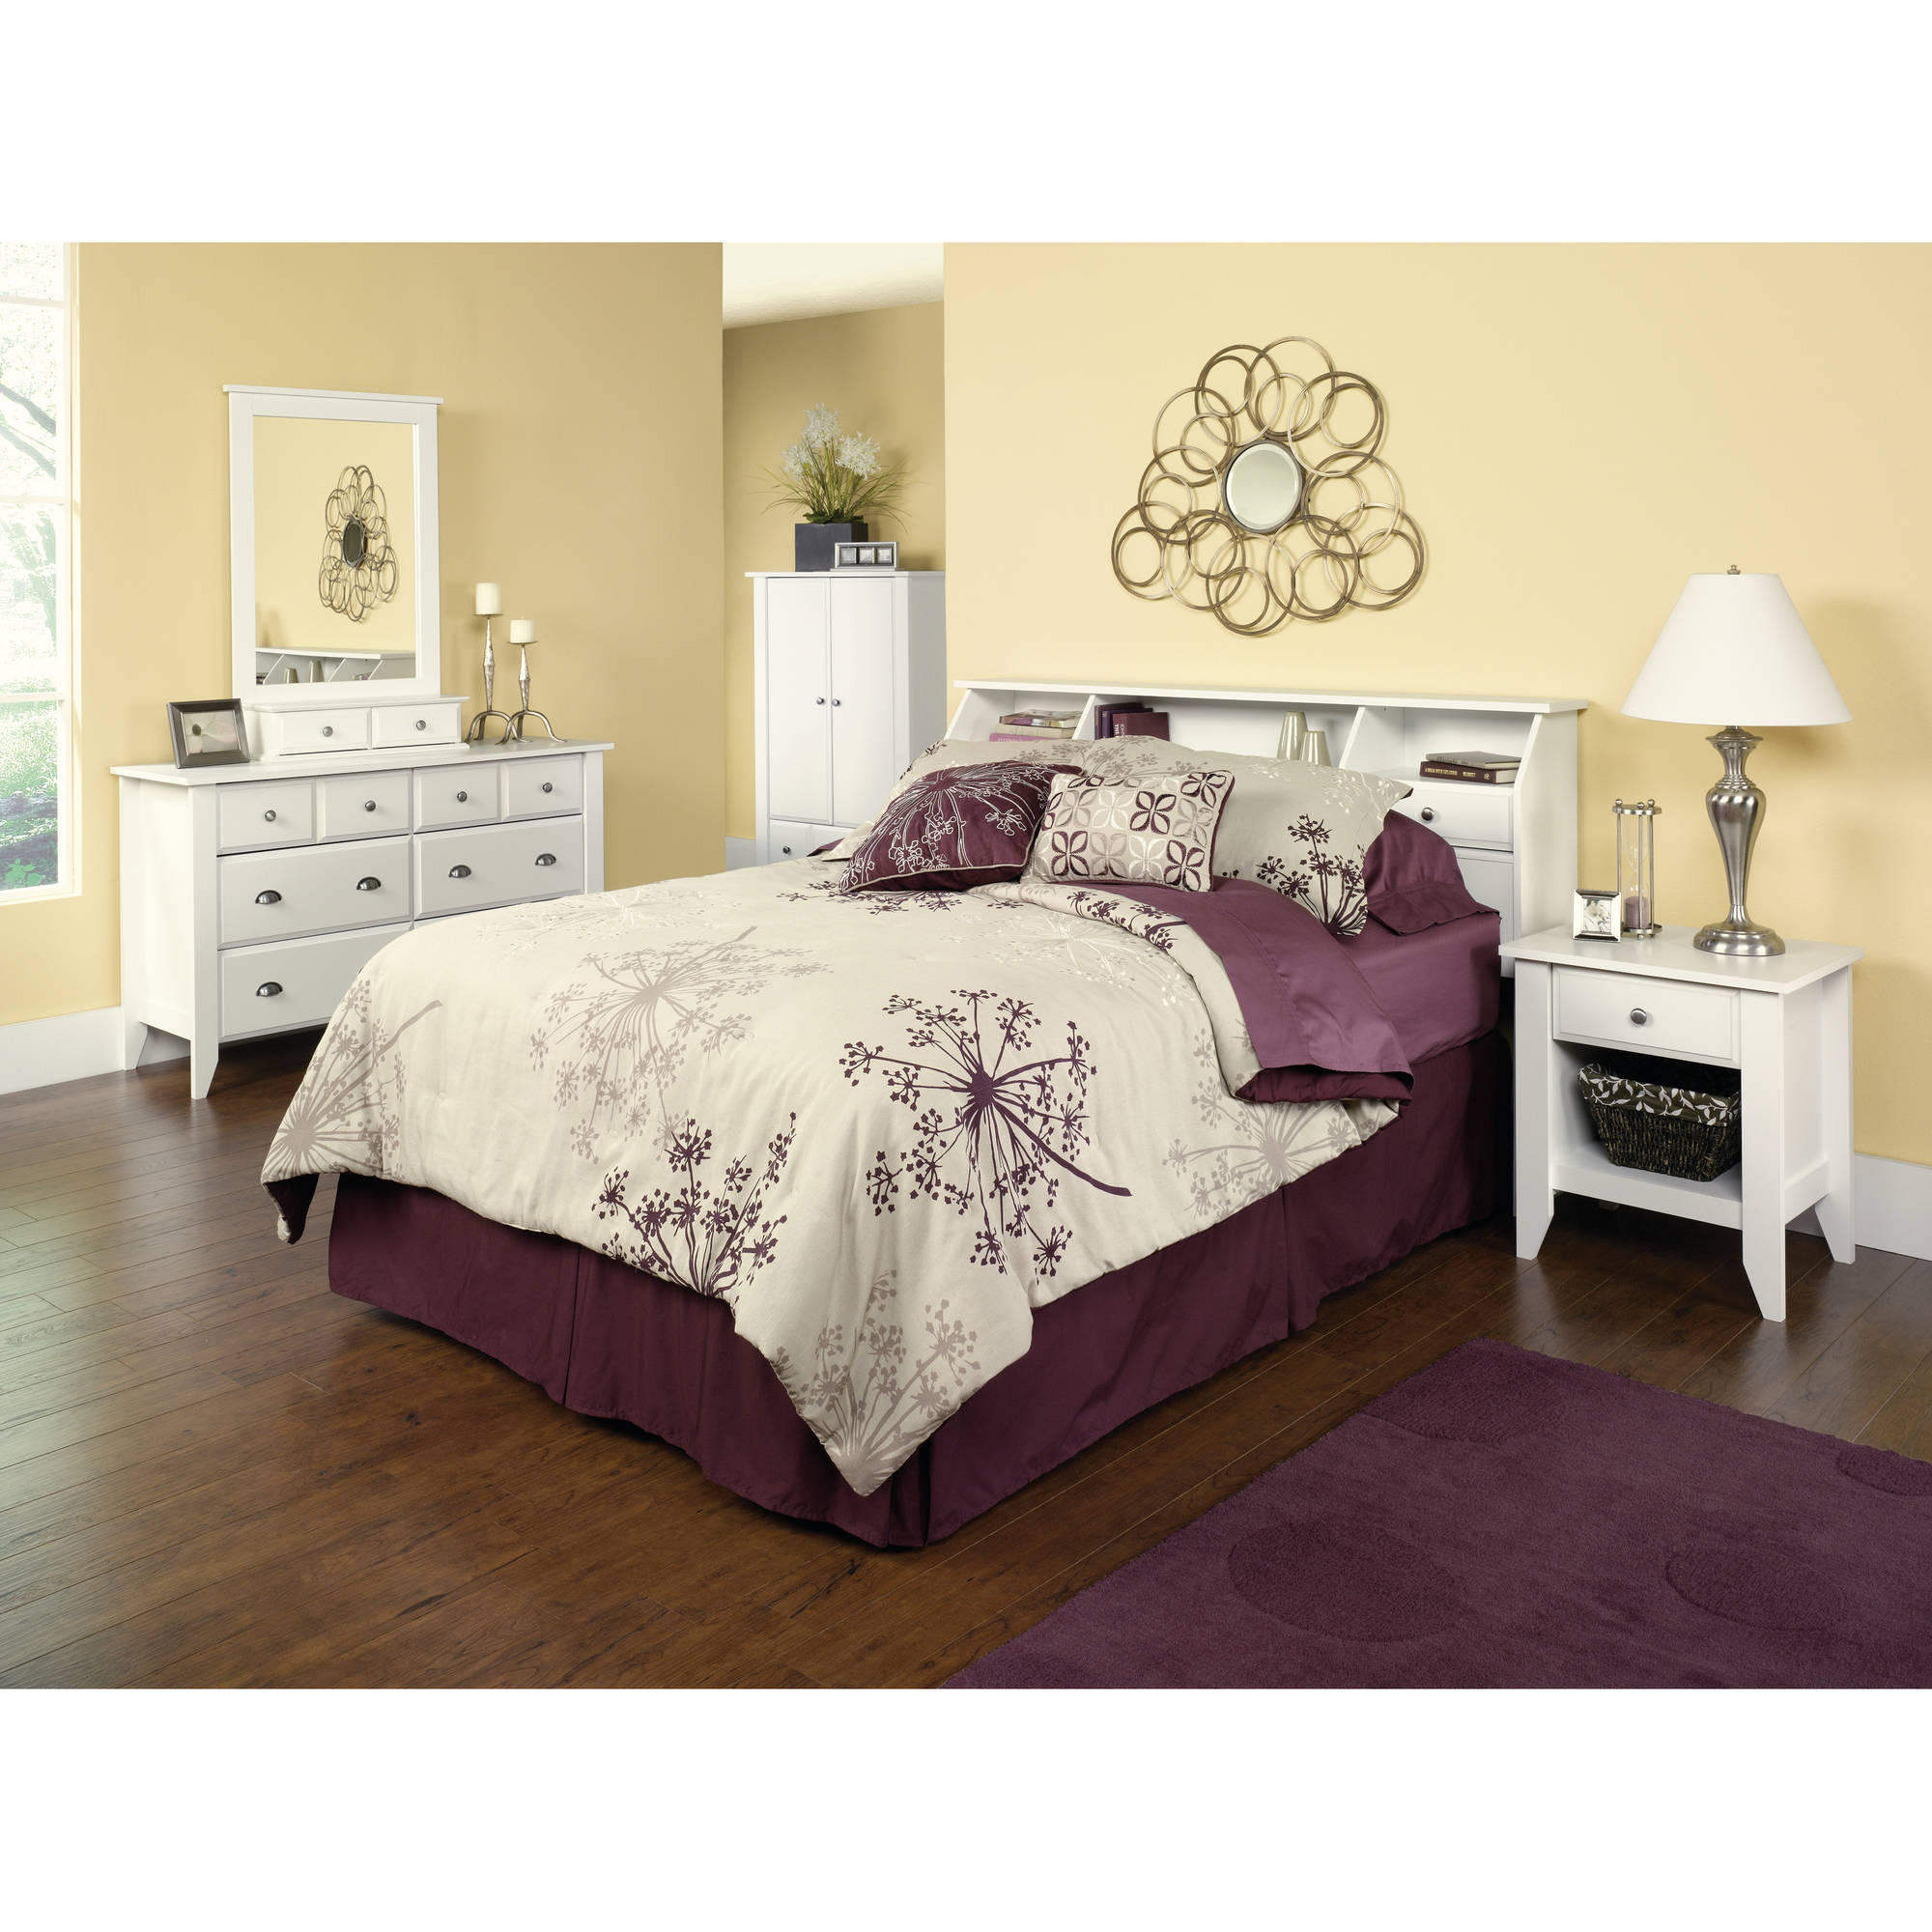 Storage bedroom furniture white full queen headboard for Furniture board